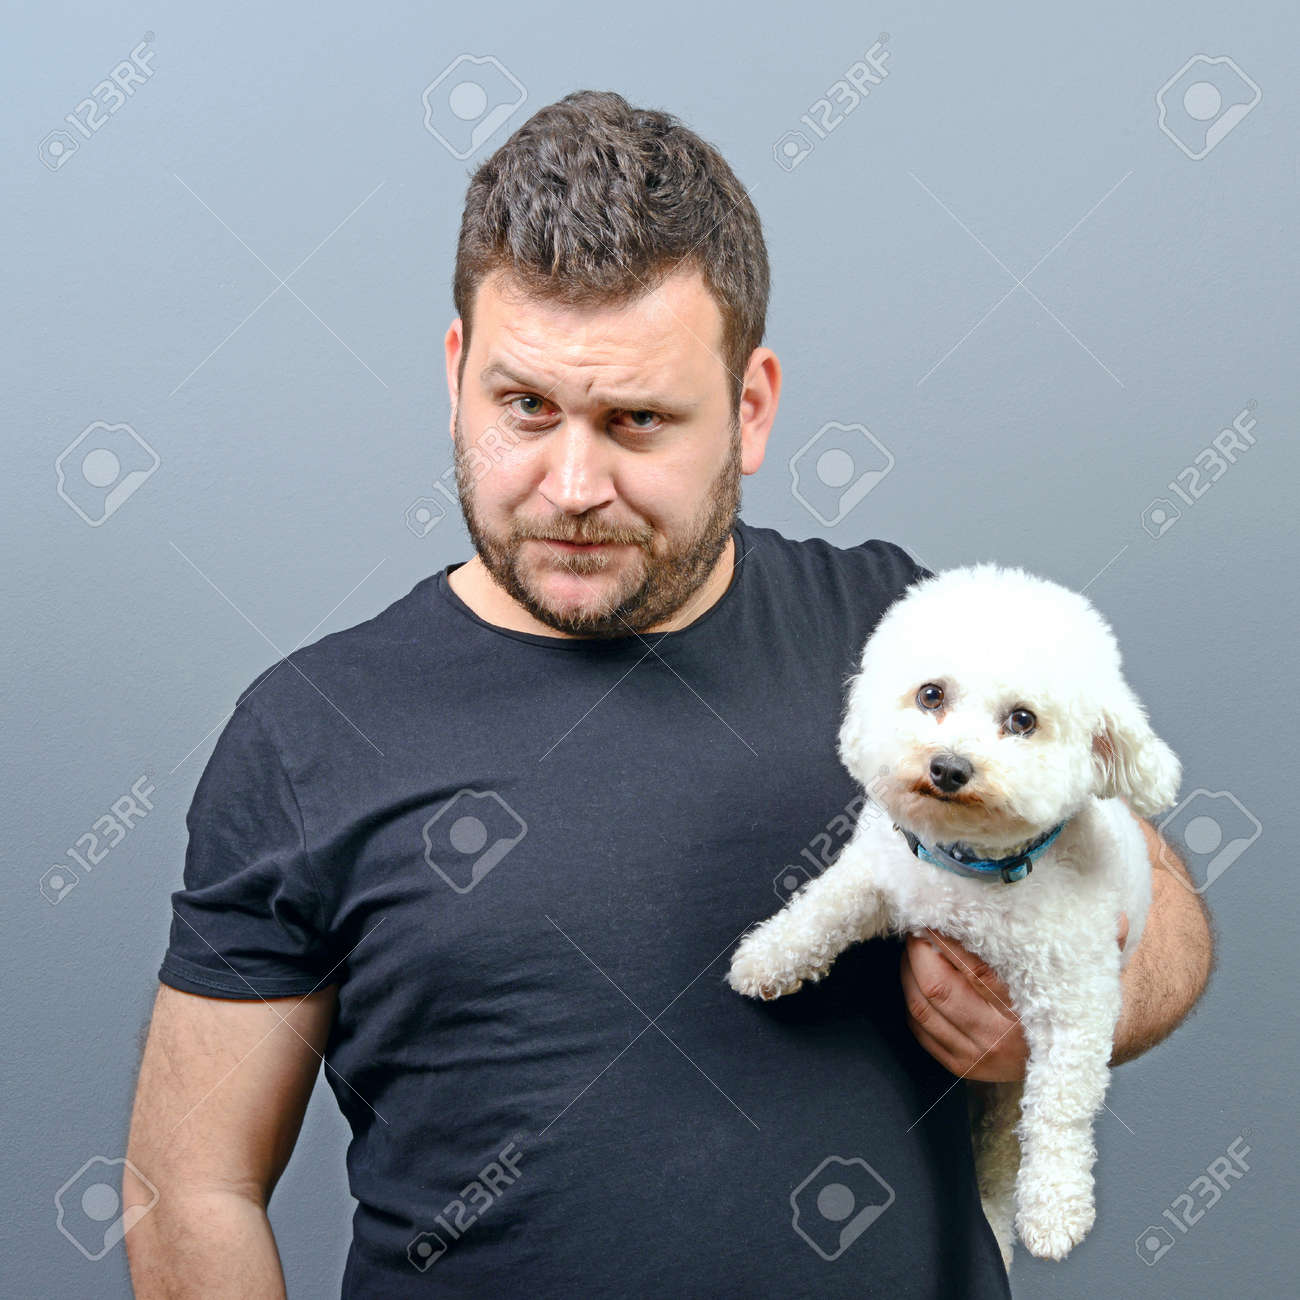 Cool Maltese Chubby Adorable Dog - 56549527-portrait-of-funny-looking-chubby-man-holding-cute-small-bichon-frise-puppy-against-gray-background  Image_48322  .jpg